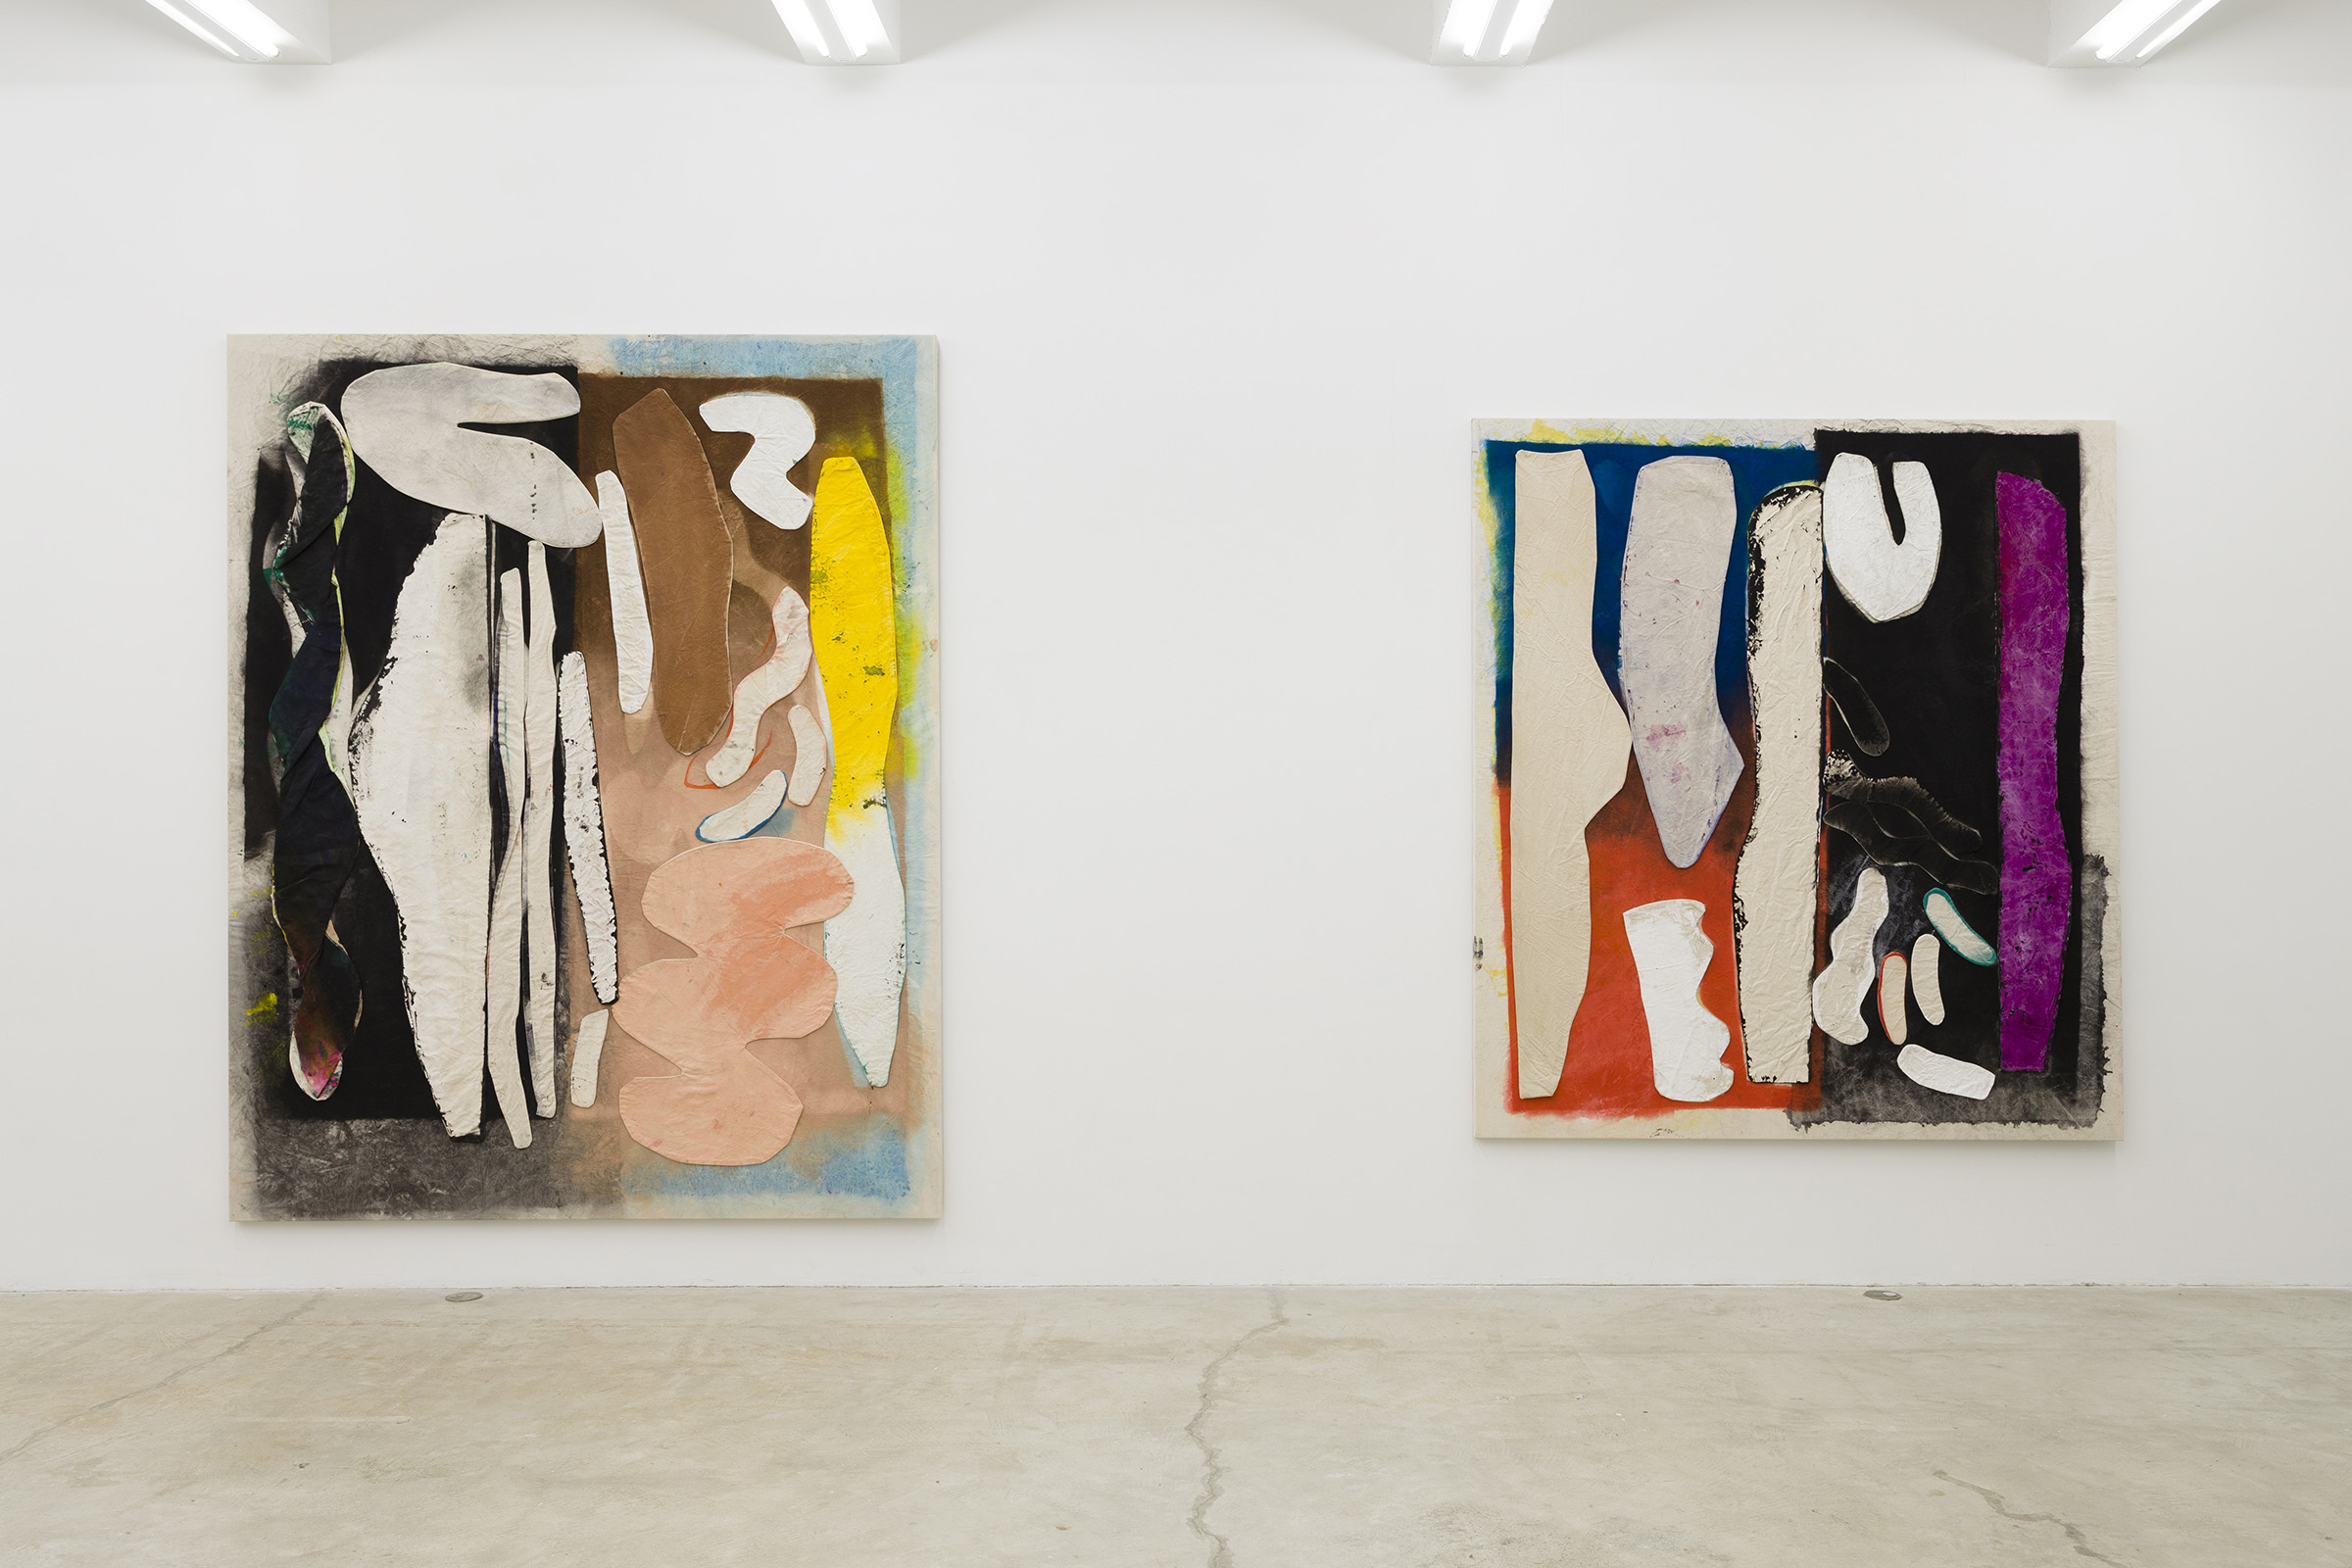 5 - Jess Fuller at Martos Gallery New York